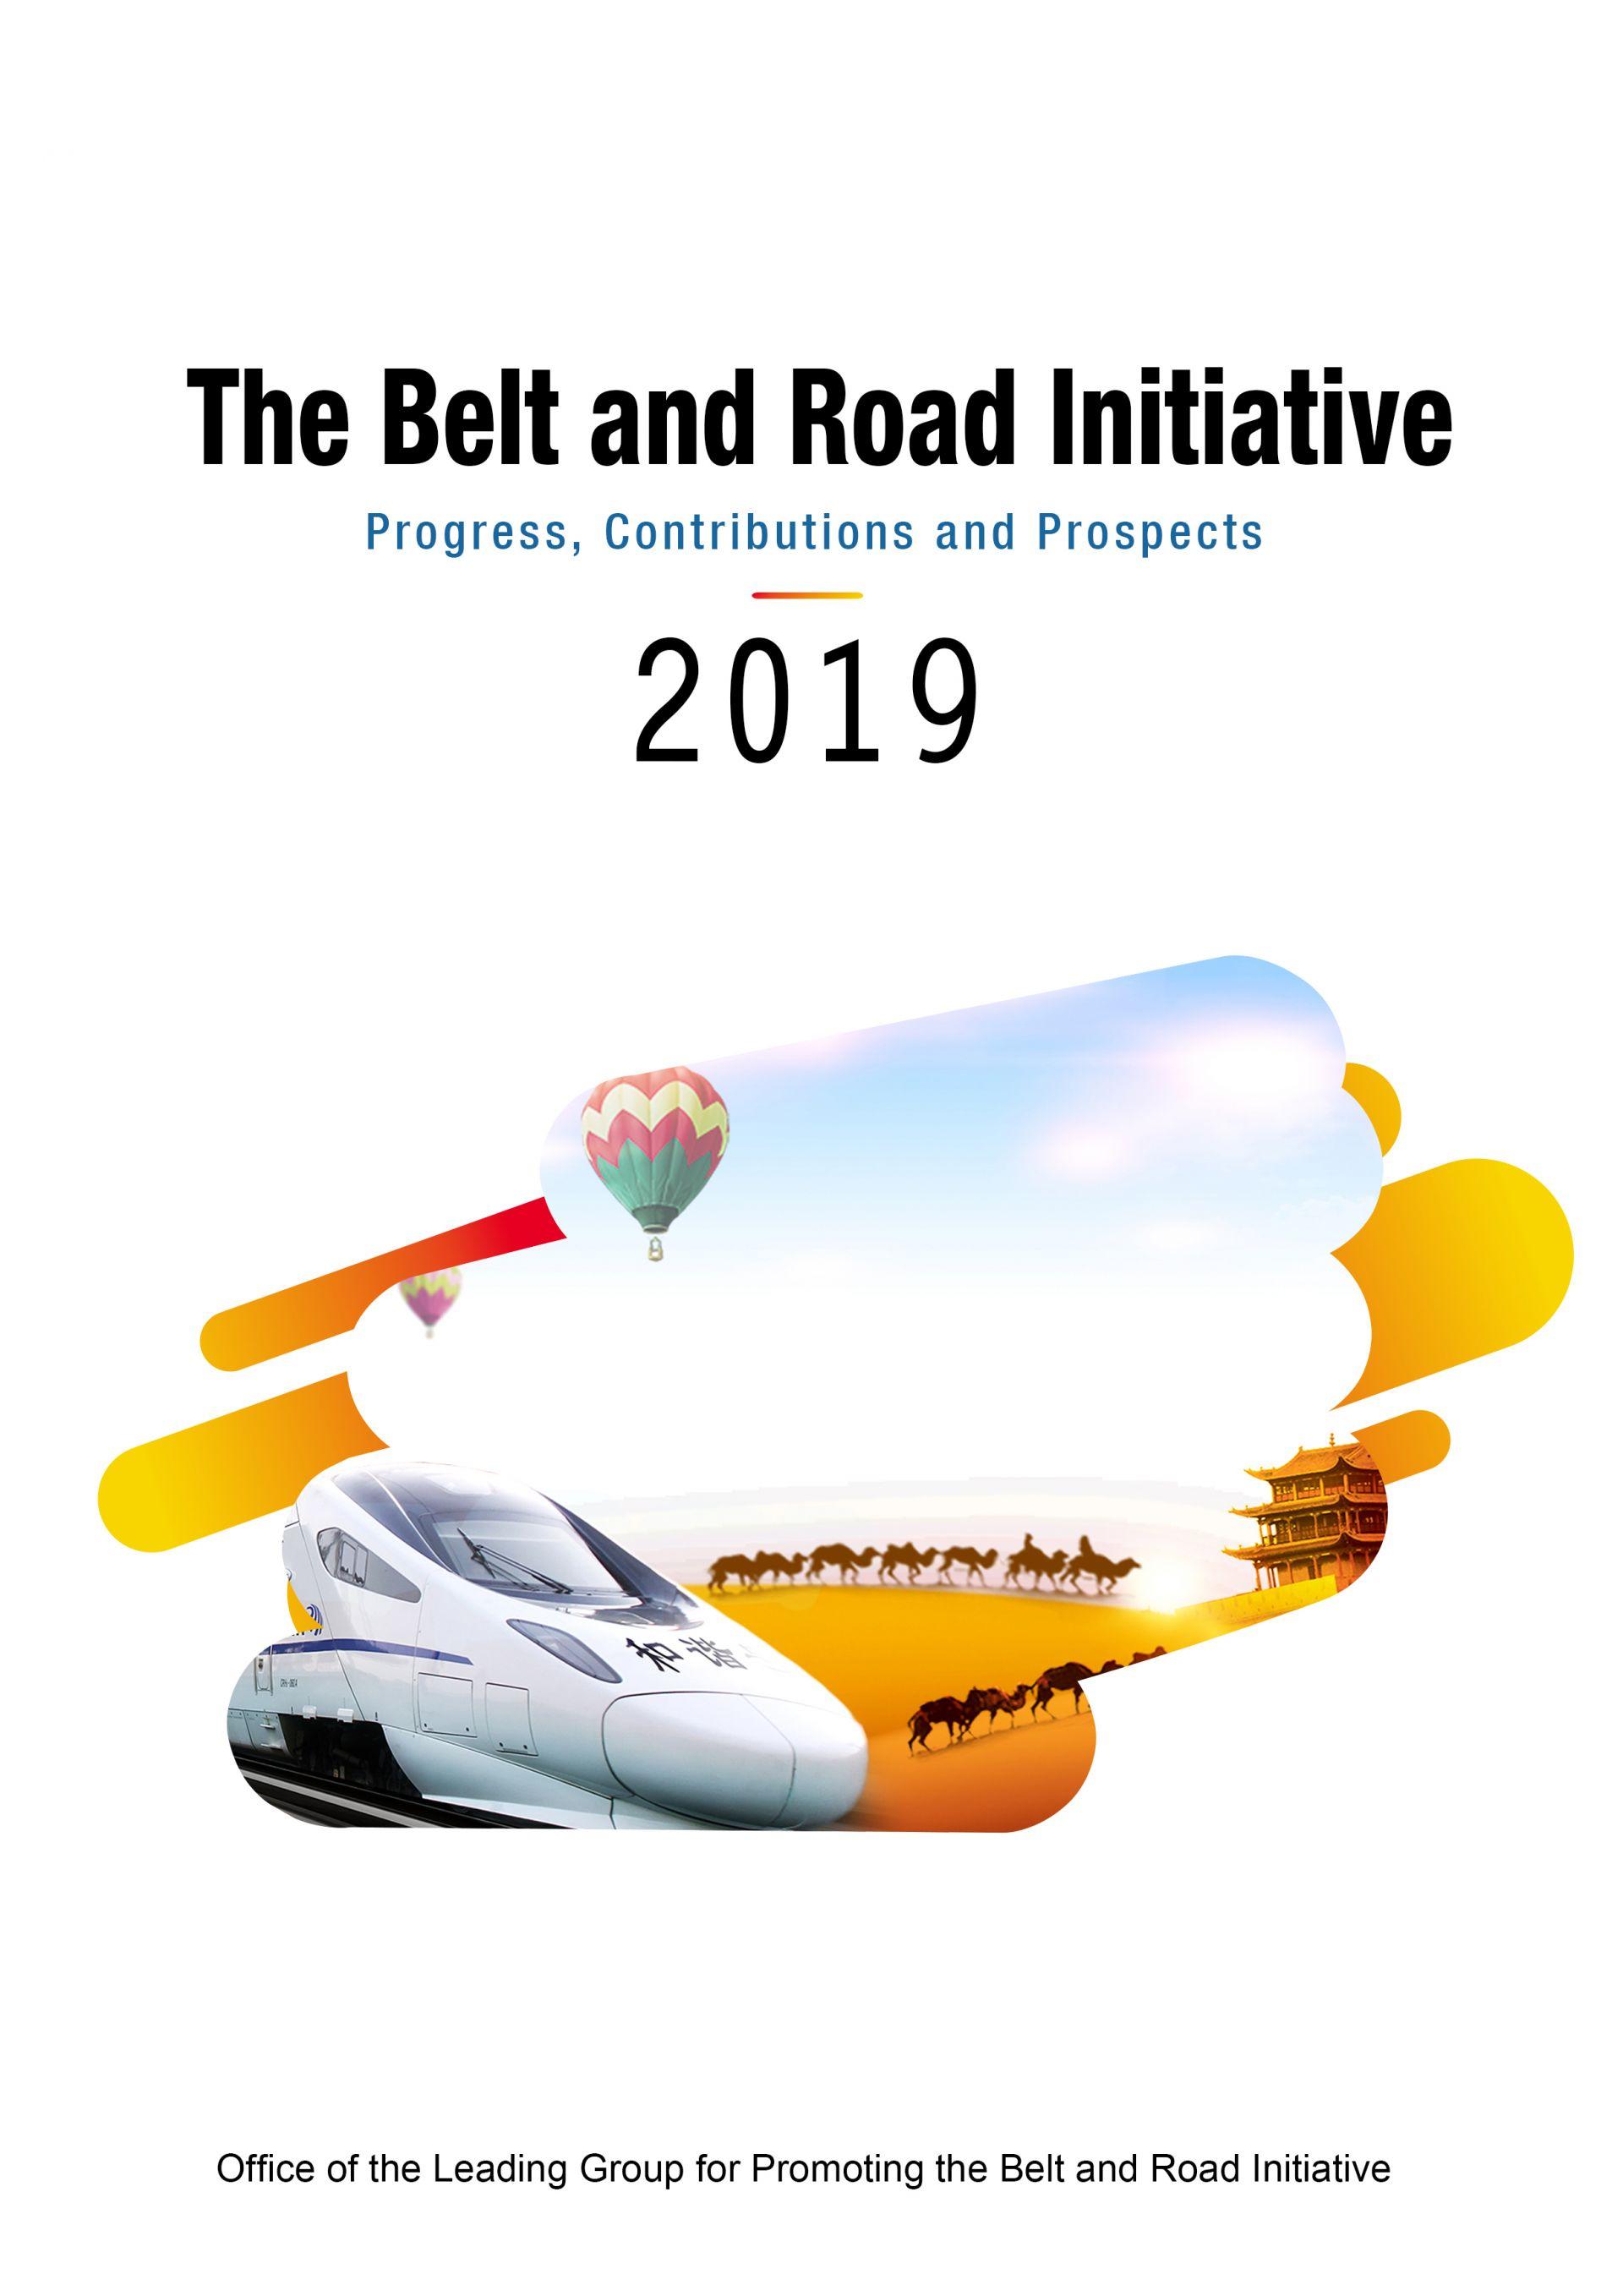 The Belt and Road Initiative Progress, Contributions and Prospects